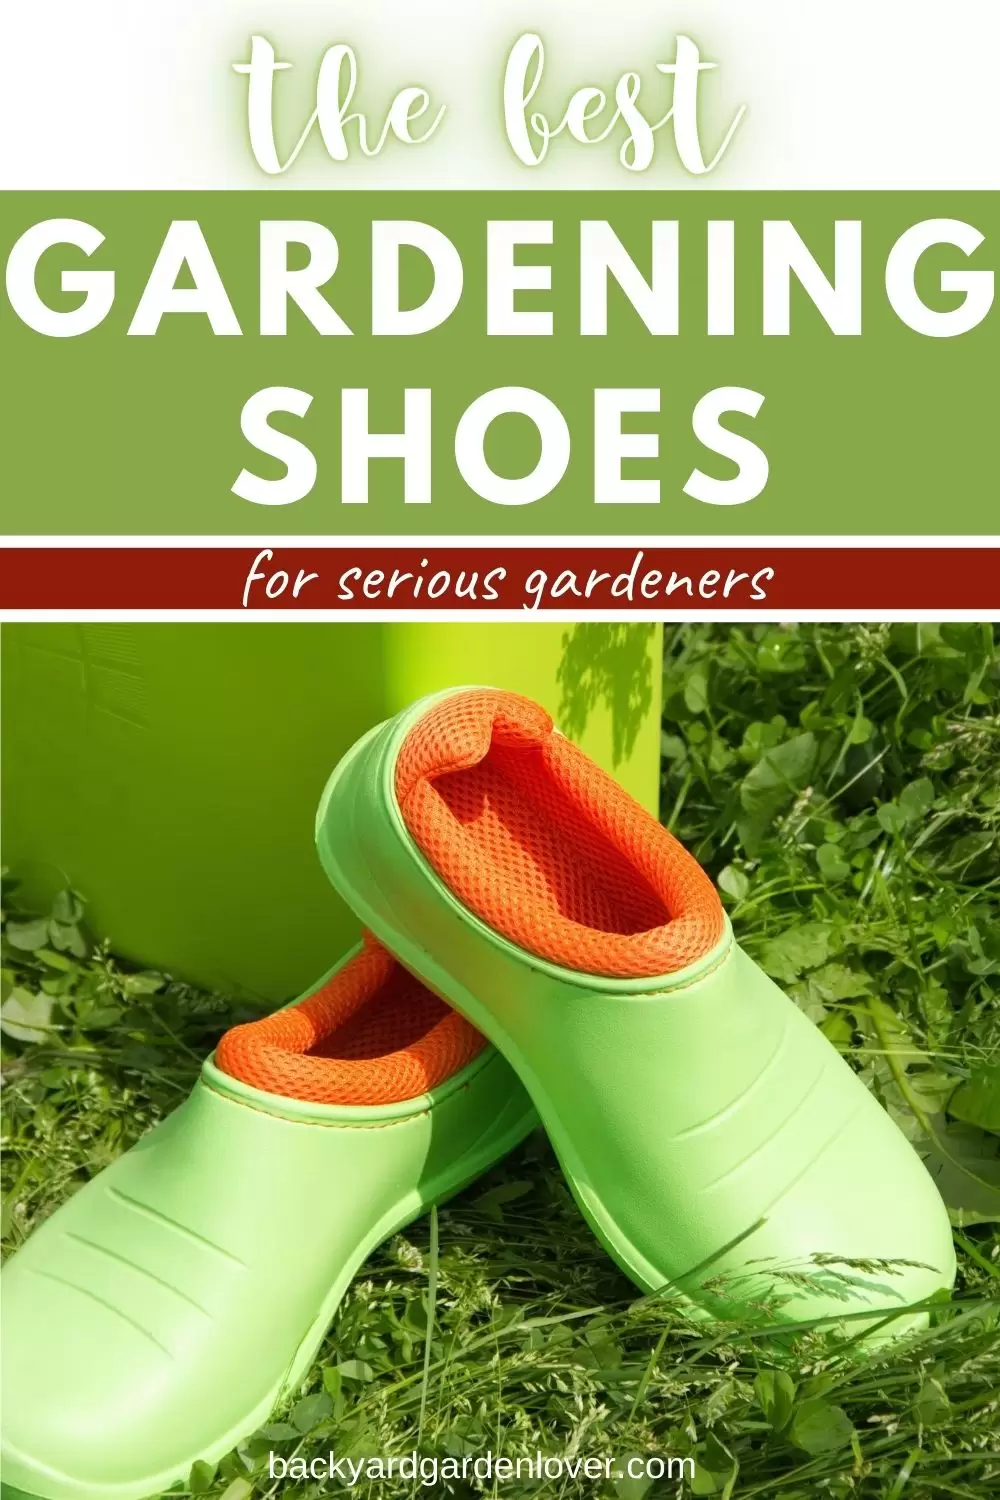 b707502e073192c168088abfb77d544e - What Are The Best Boots For Gardening